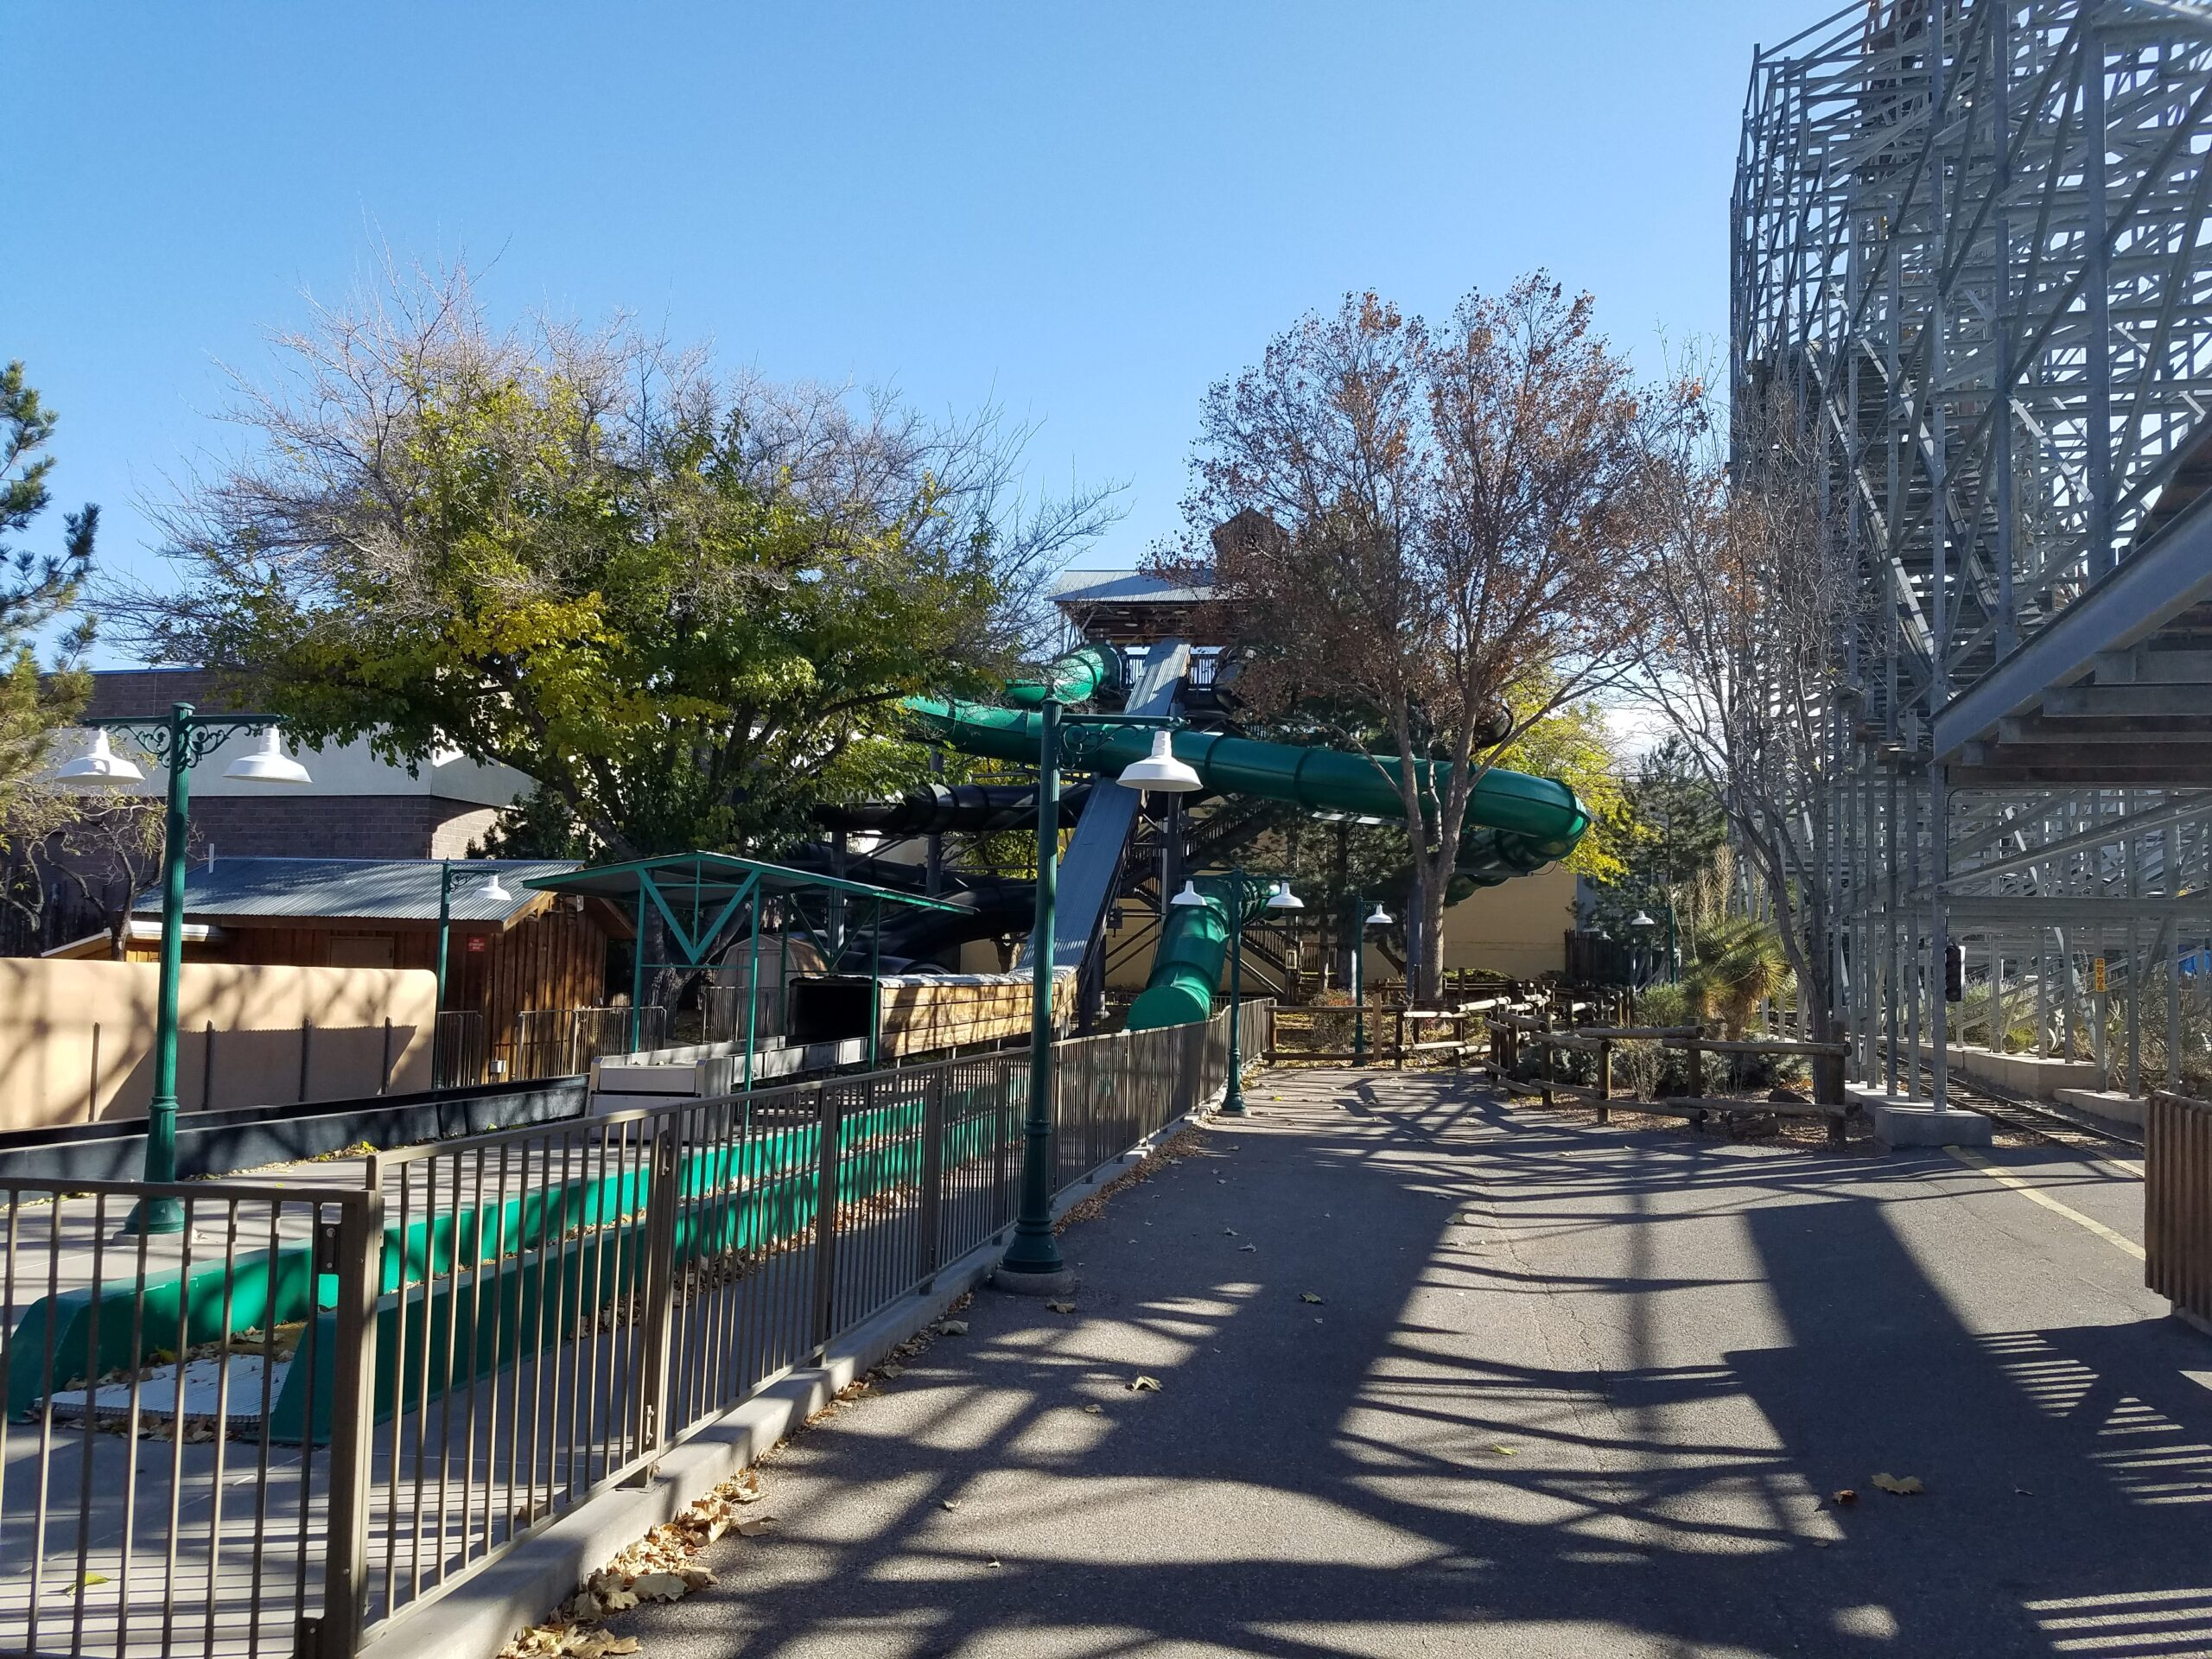 Used Whitewater Water Slides